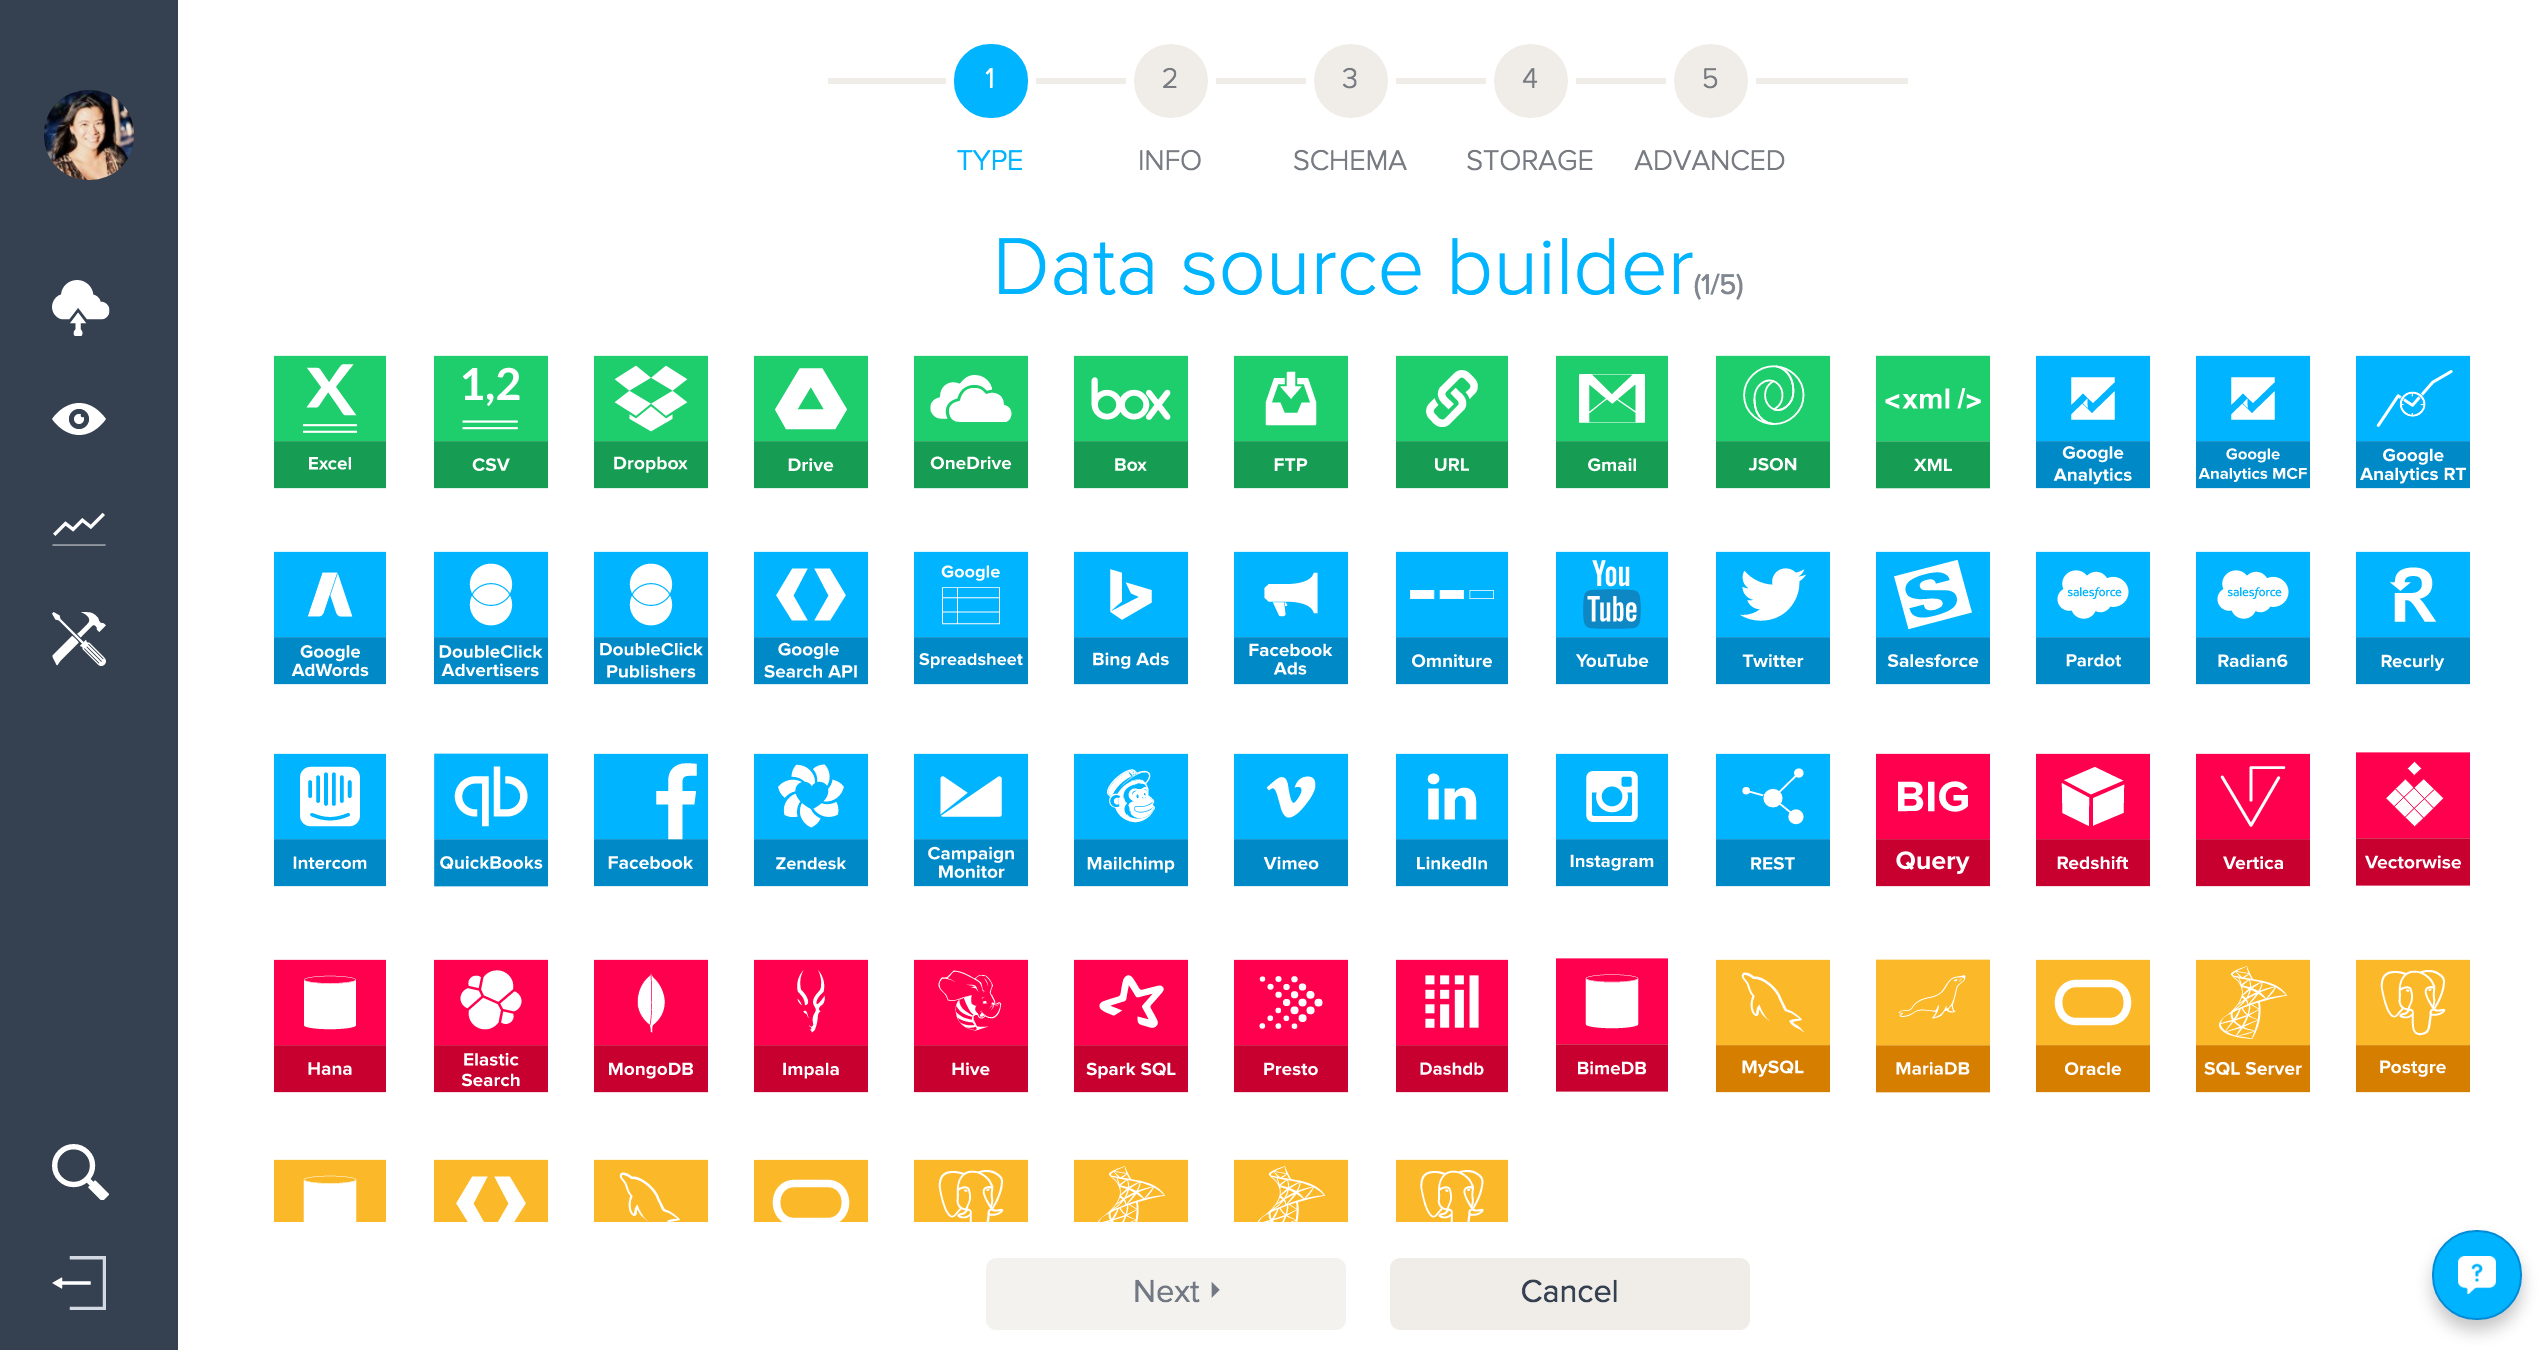 BIME data source builder